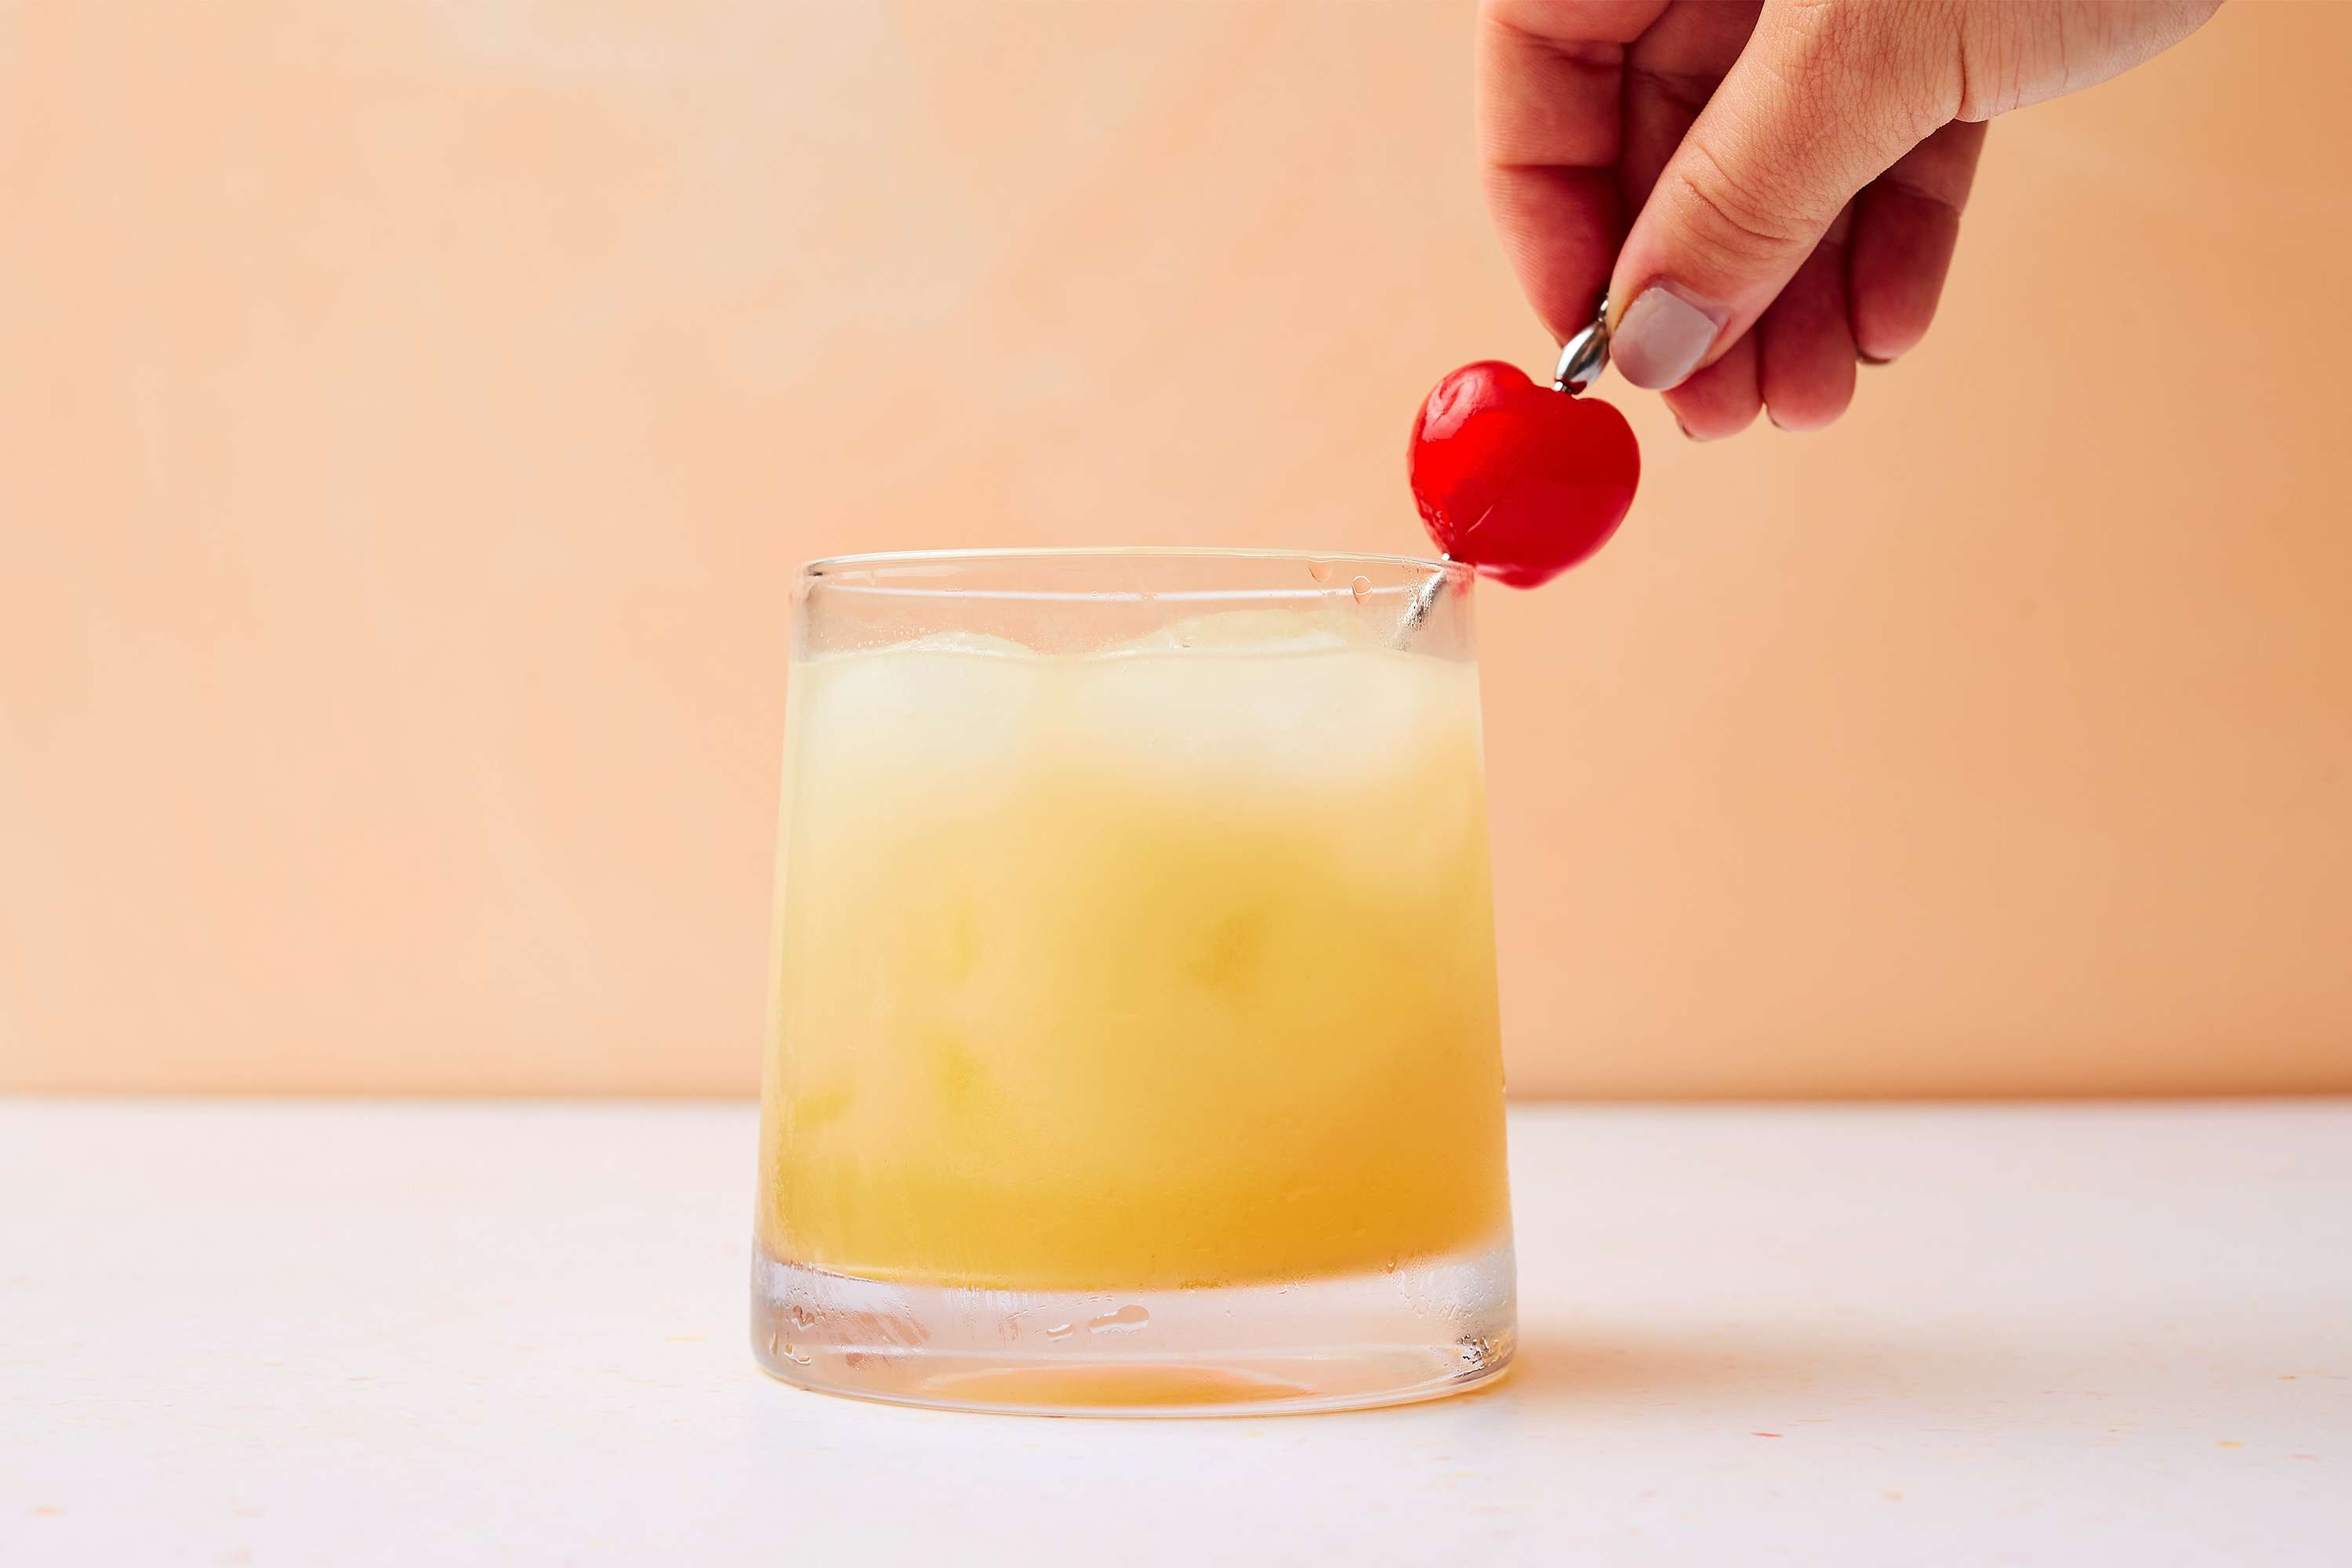 Apricot Sour Cocktail in a glass, garnished with a cherry